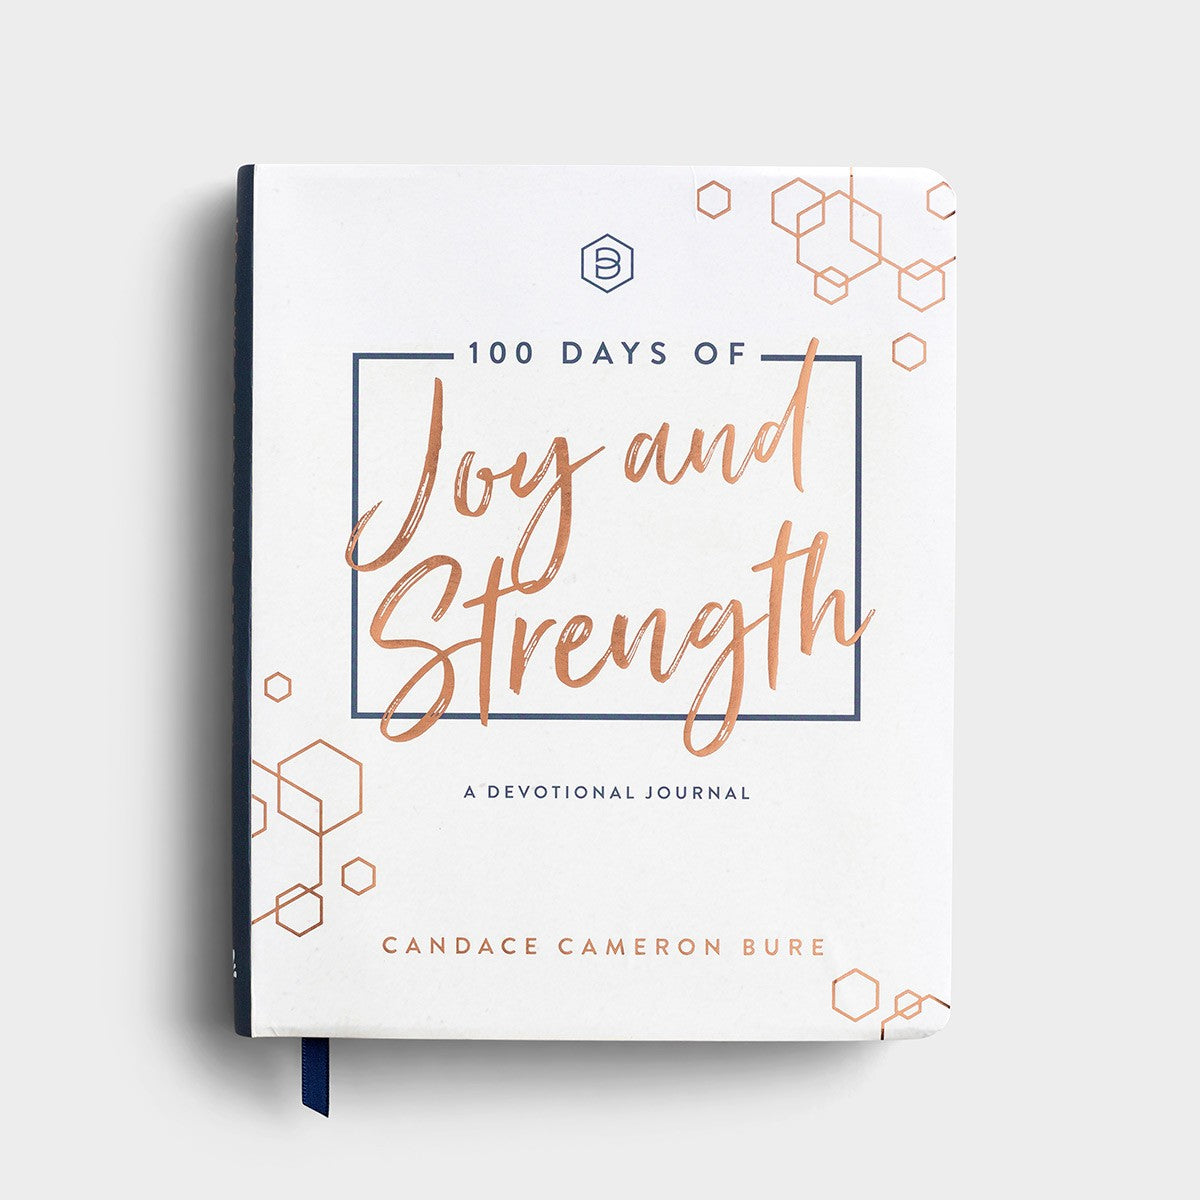 100 Days of Joy and Strength Devotional